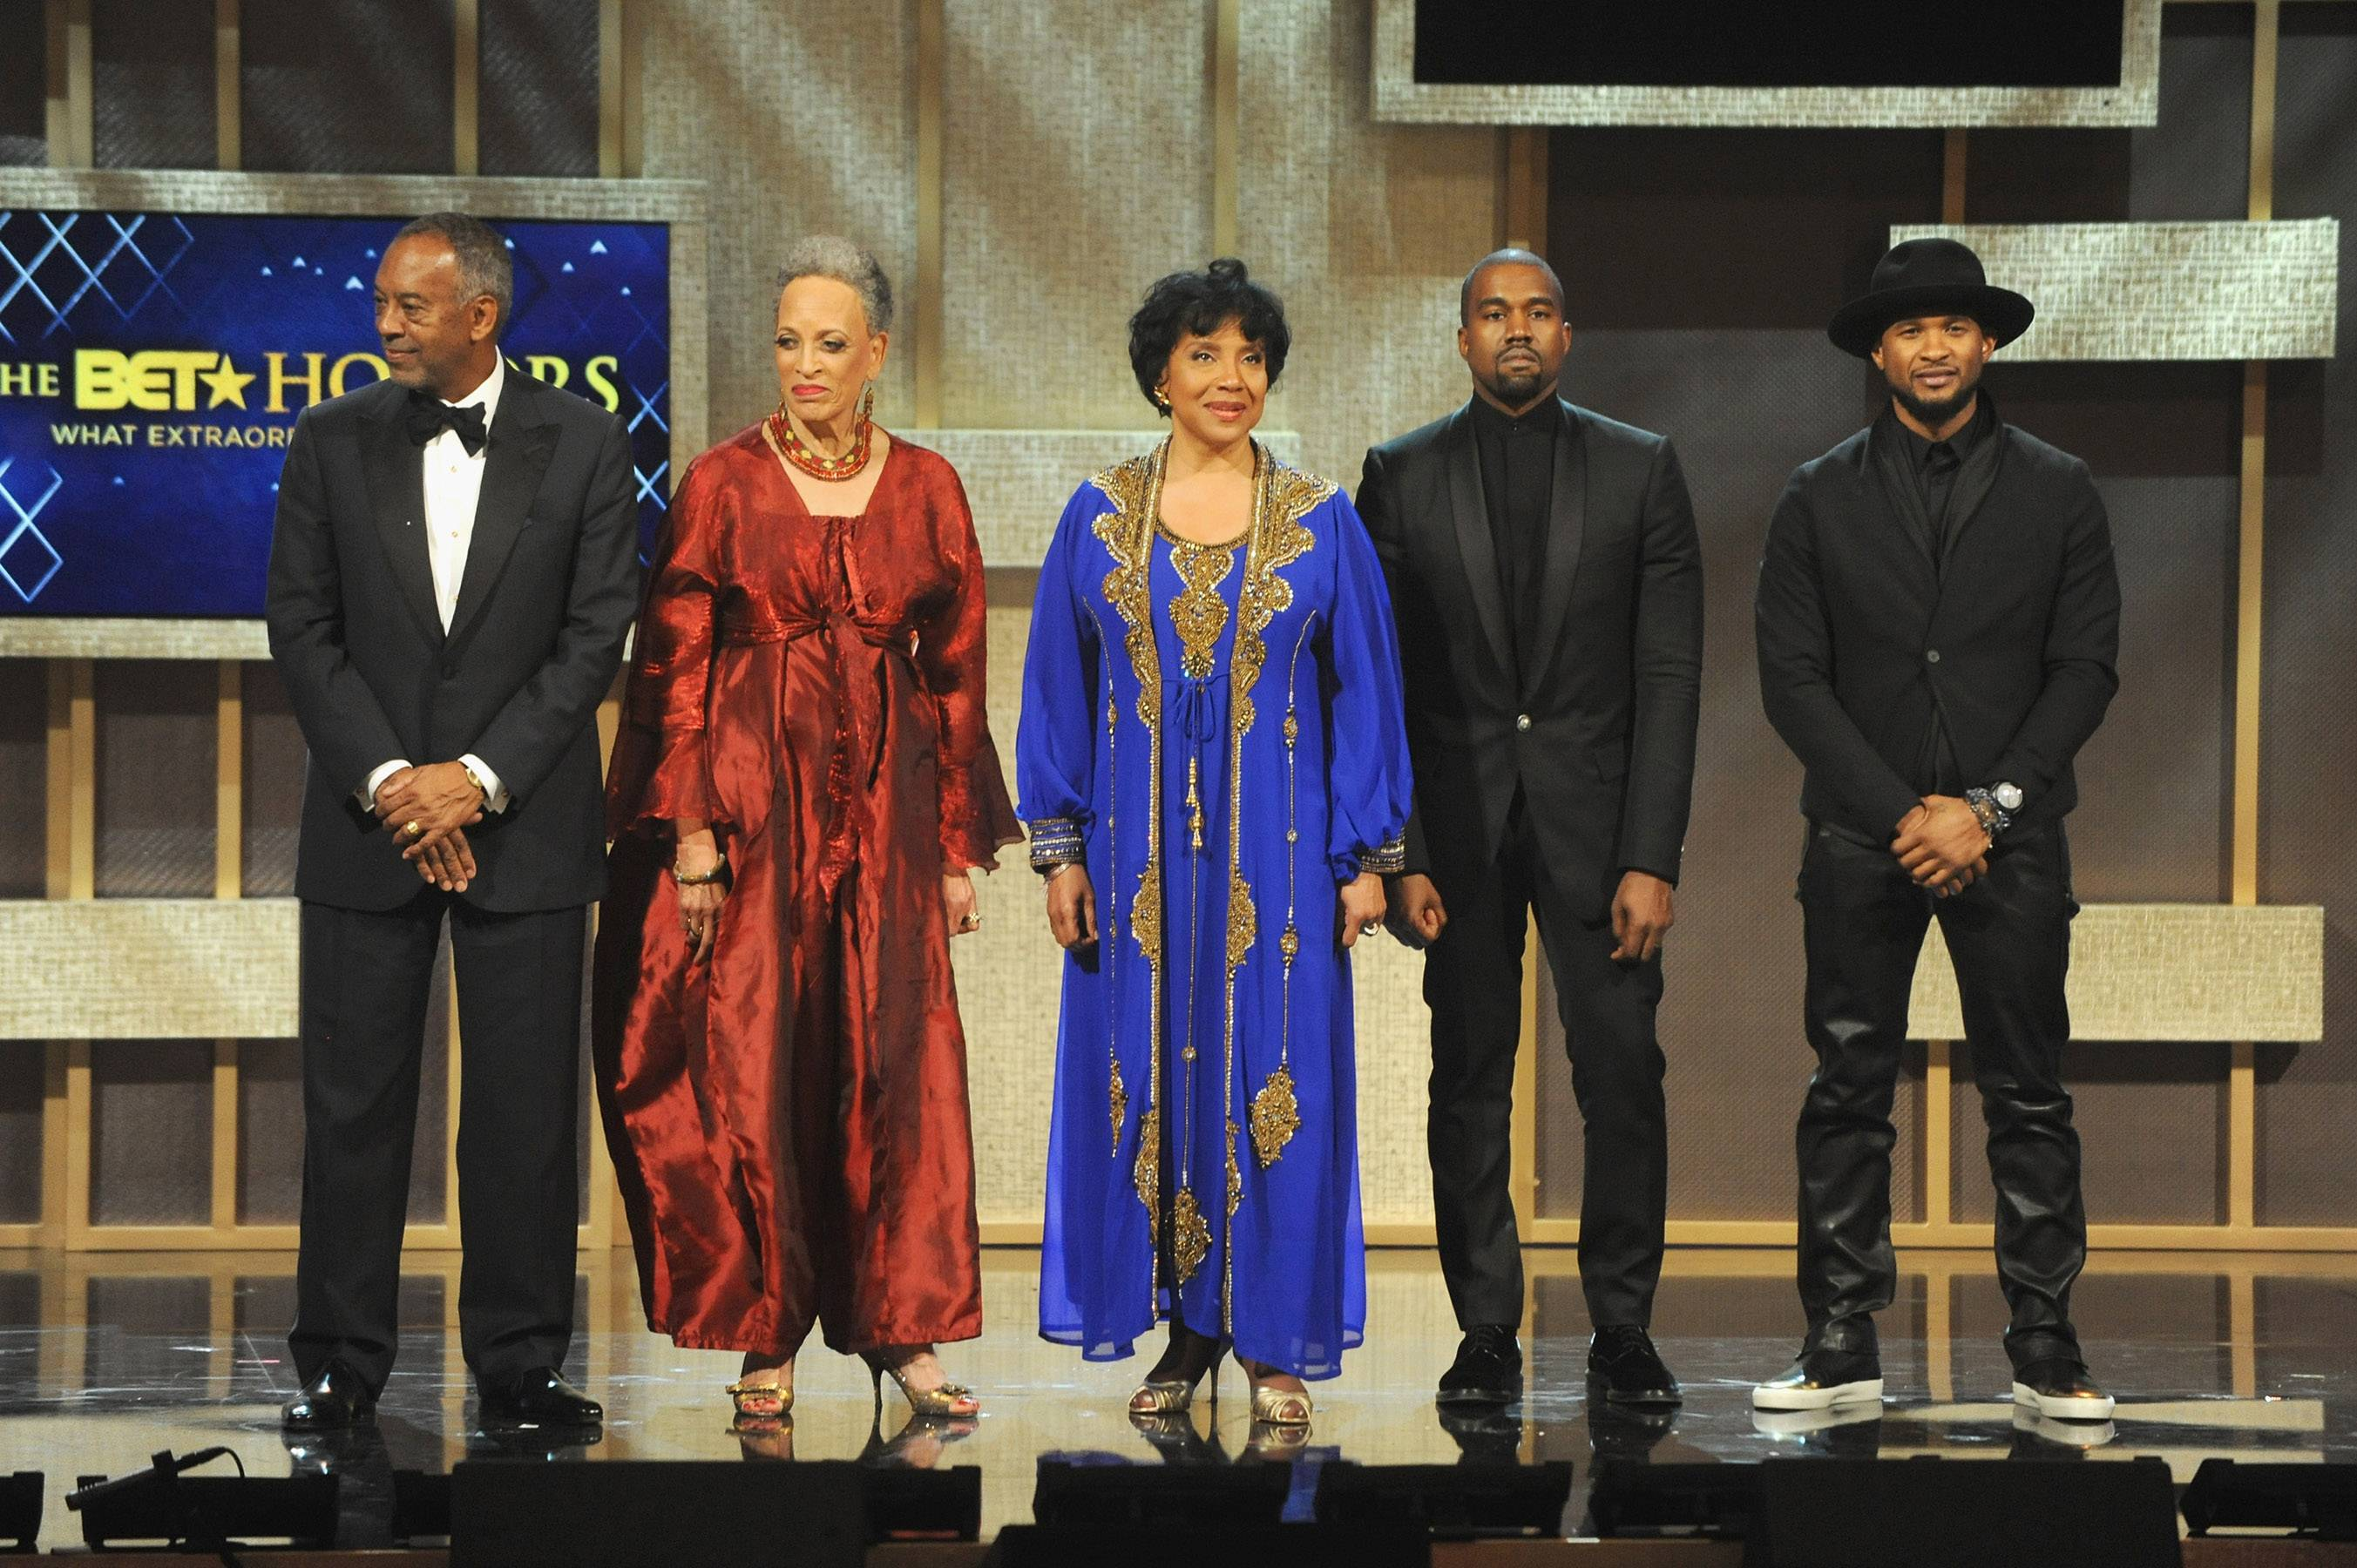 The BET Honors Honorees  - HonoreesJohn W. Thompson, Dr. Johnnetta B. Cole, Phylicia Rashad, Kanye West and Usher pose onstage. (Photo: Brad Barket/BET/Getty Images for BET)